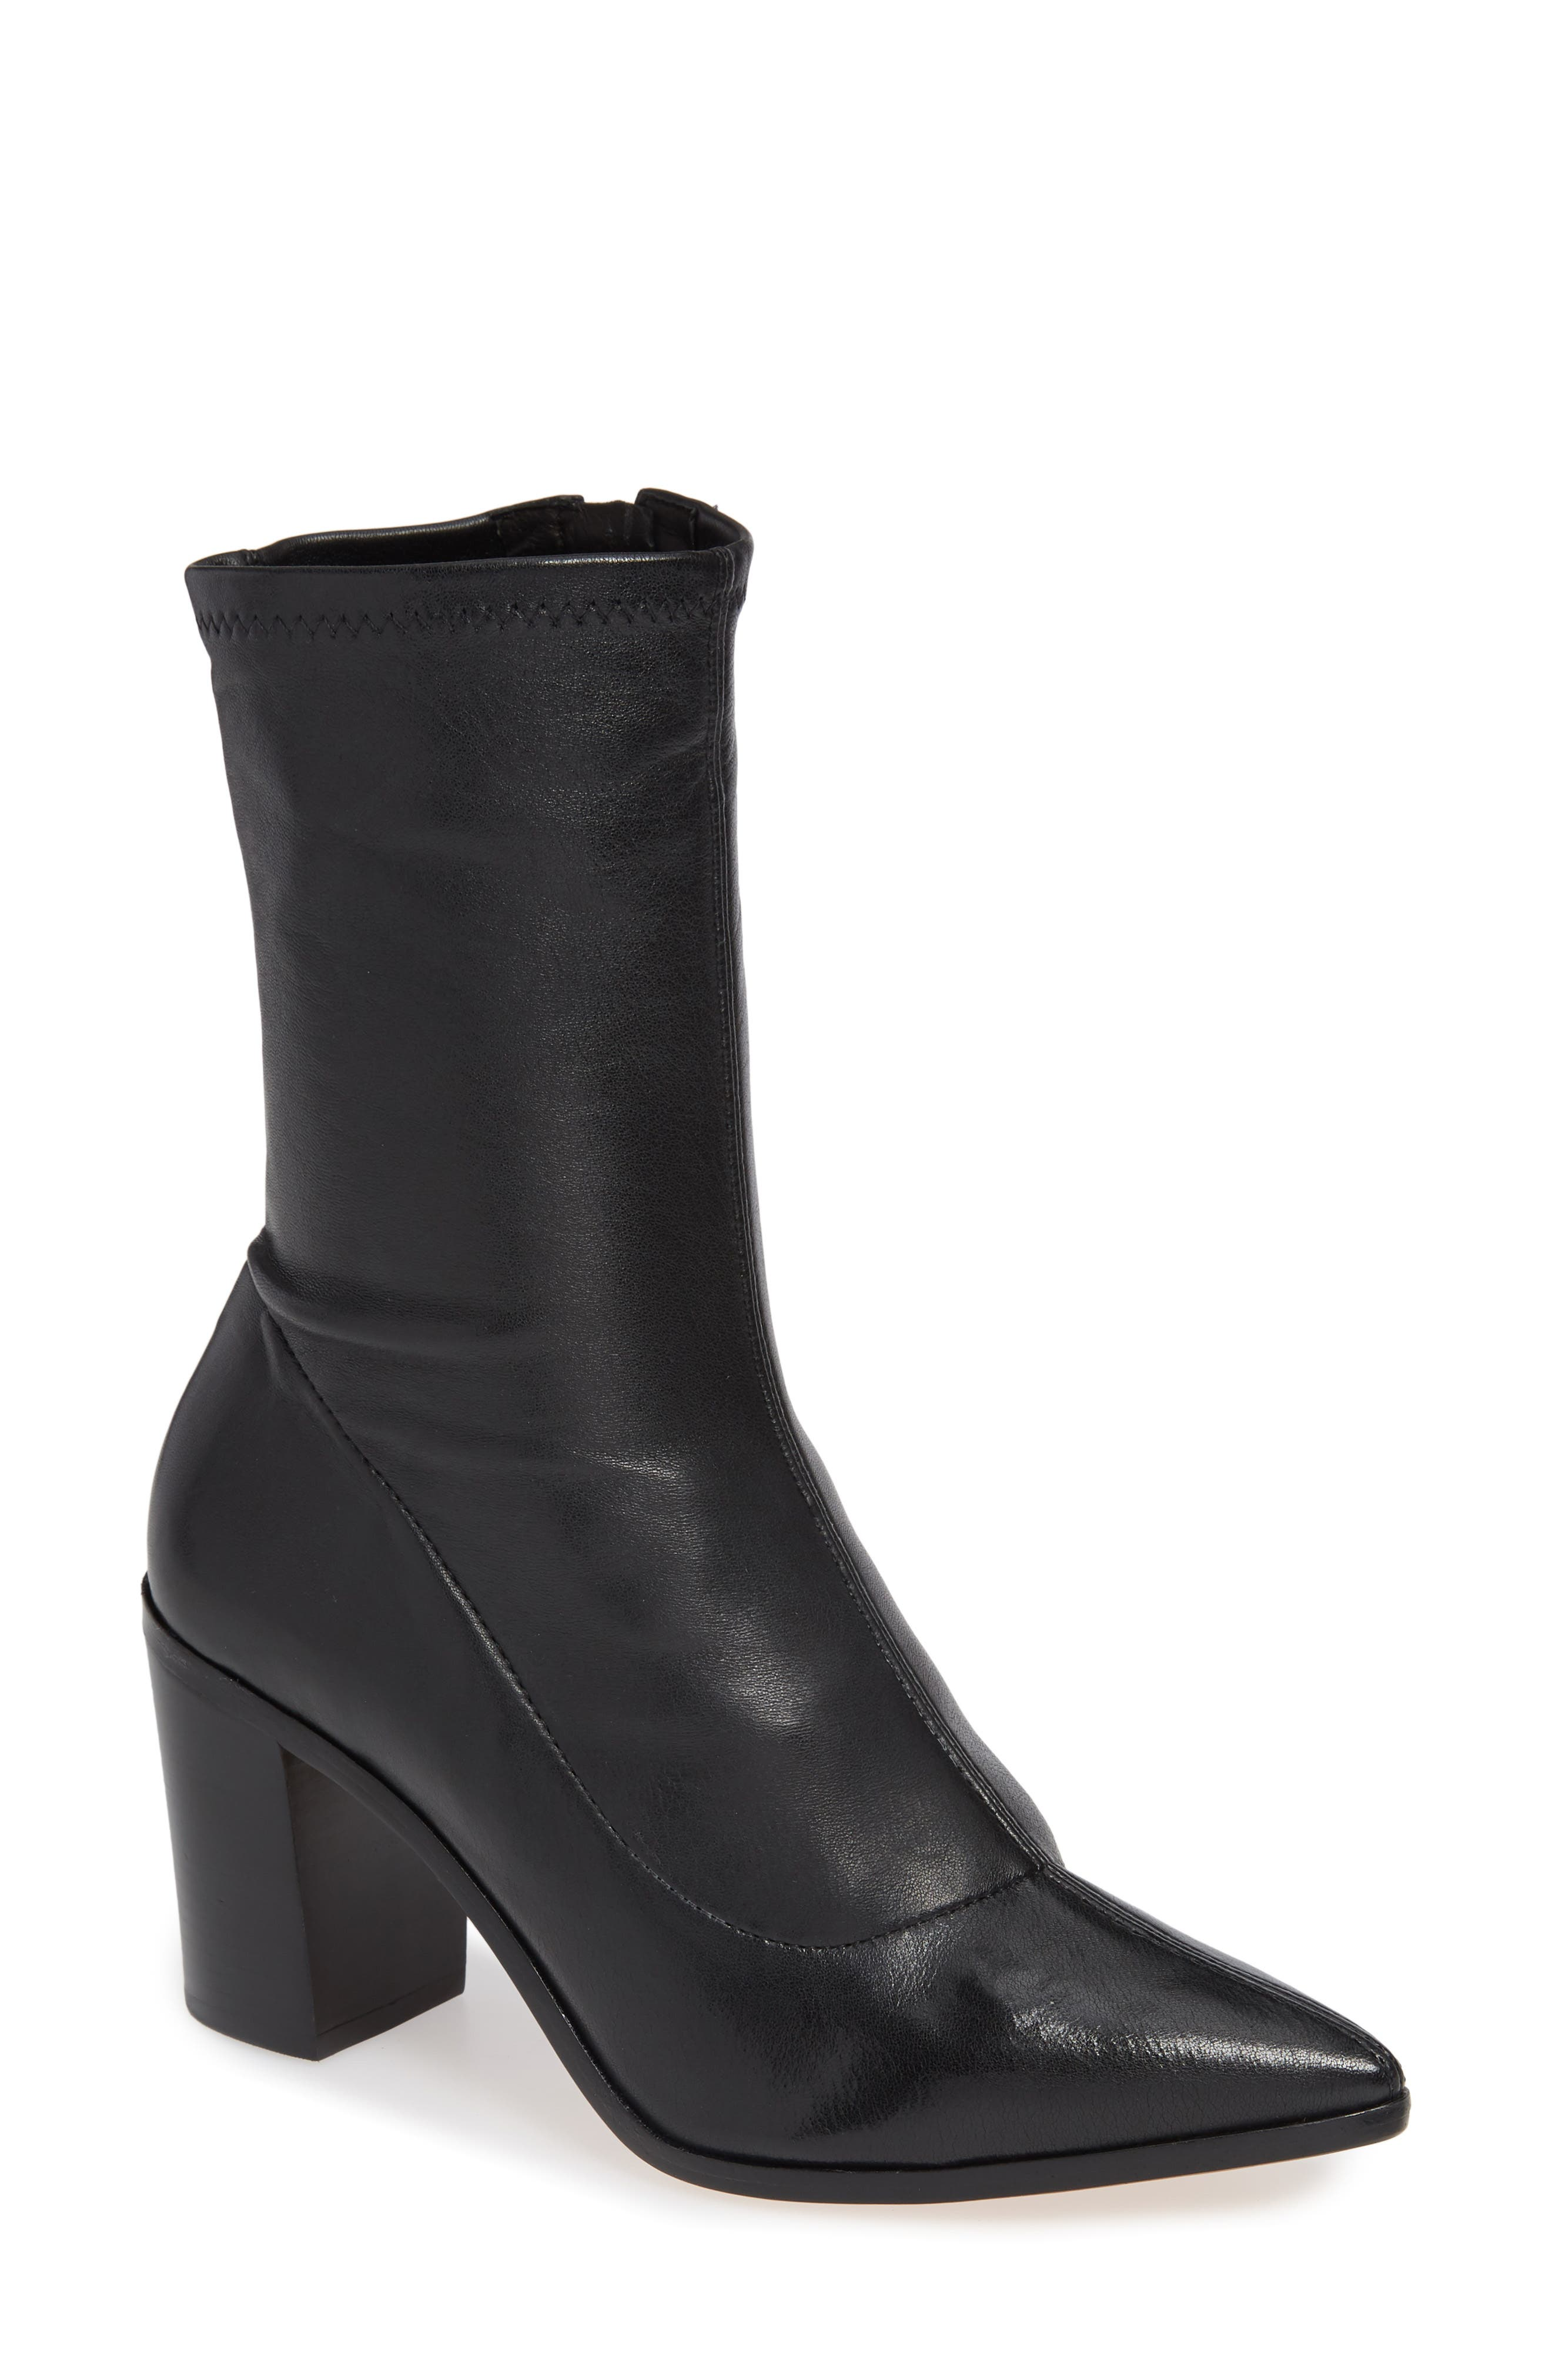 Amellie Pointy Toe Bootie,                             Main thumbnail 1, color,                             BLACK LEATHER